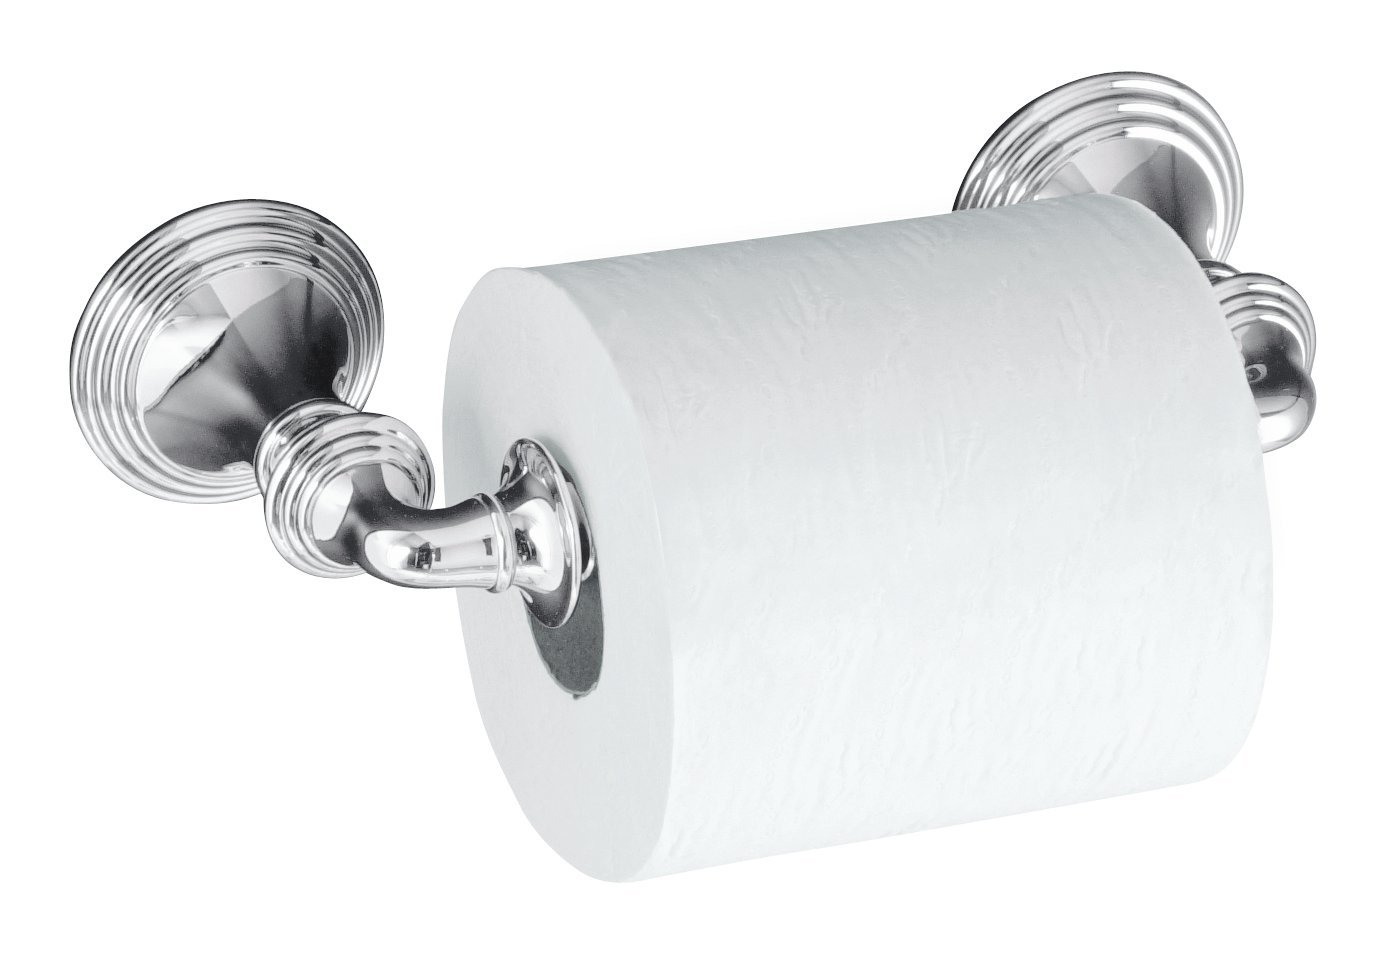 kohler k10554cp devonshire toilet tissue holder double post polished chrome toilet paper holders amazoncom - Kohler Devonshire